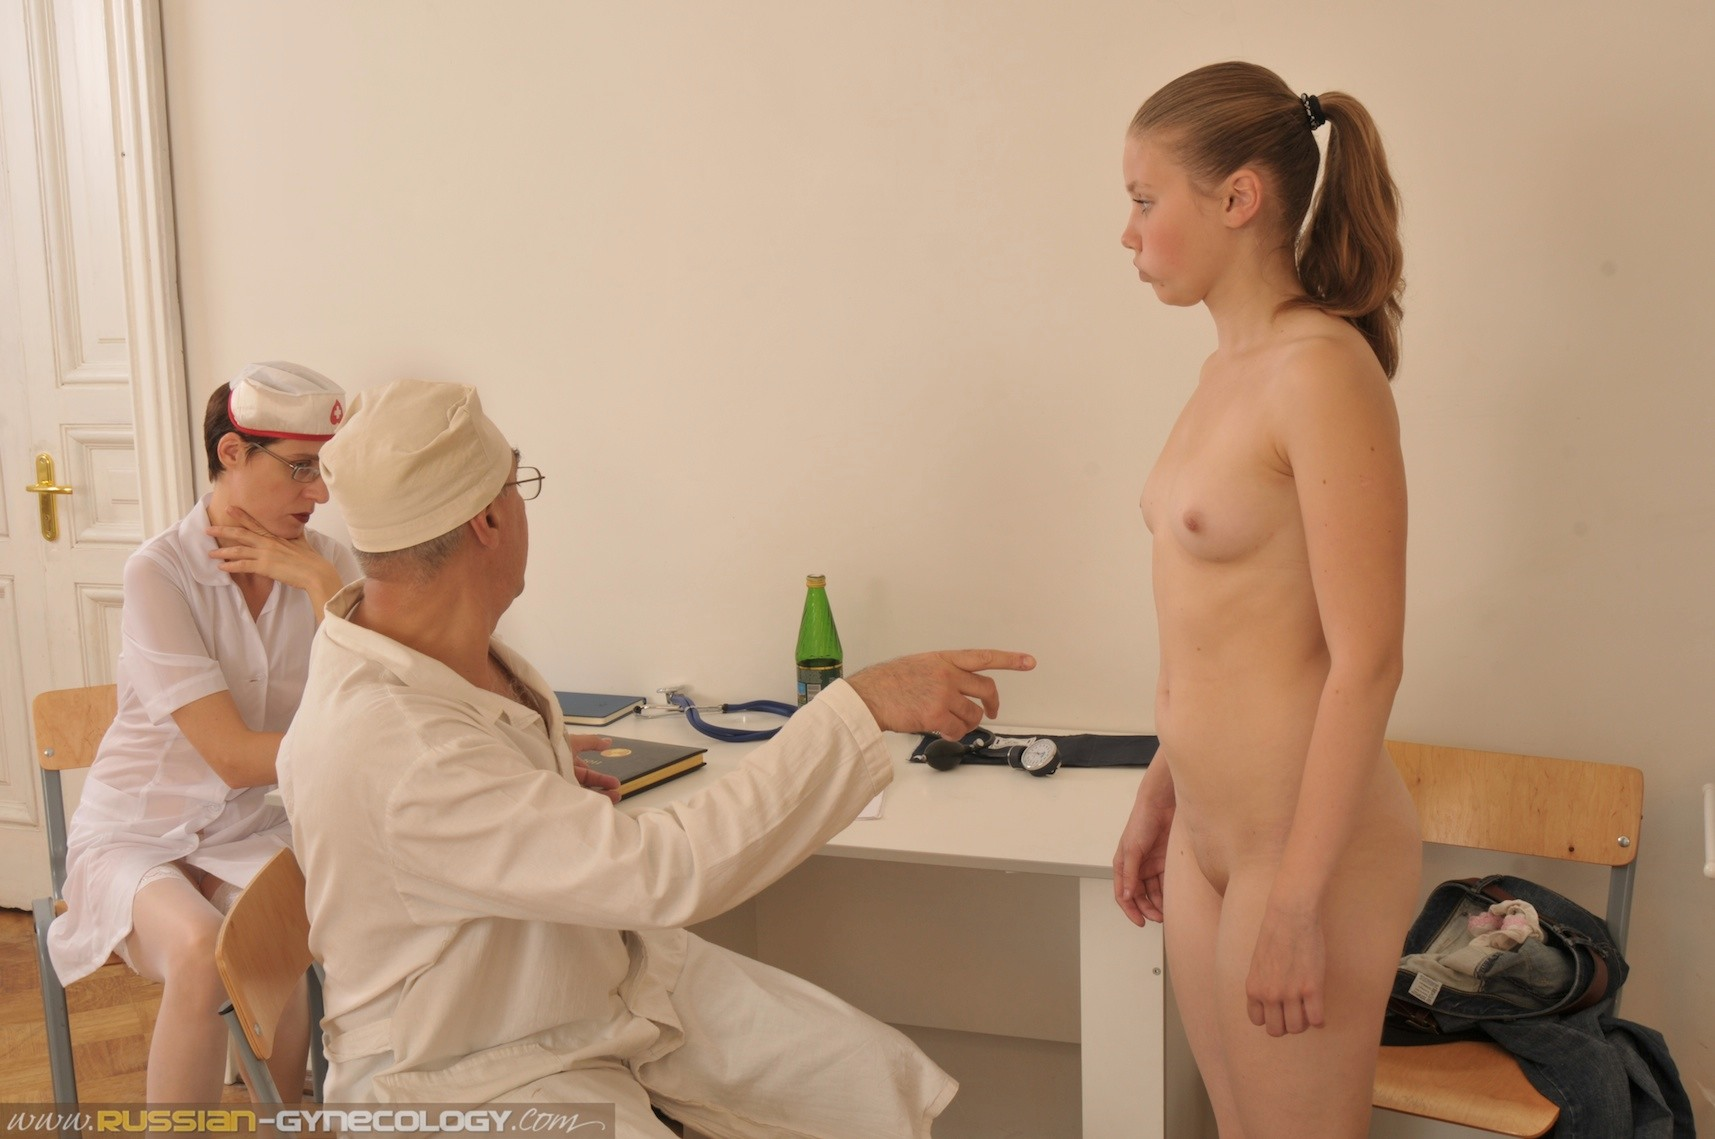 russian gynecology site hg galleries 003 photo04